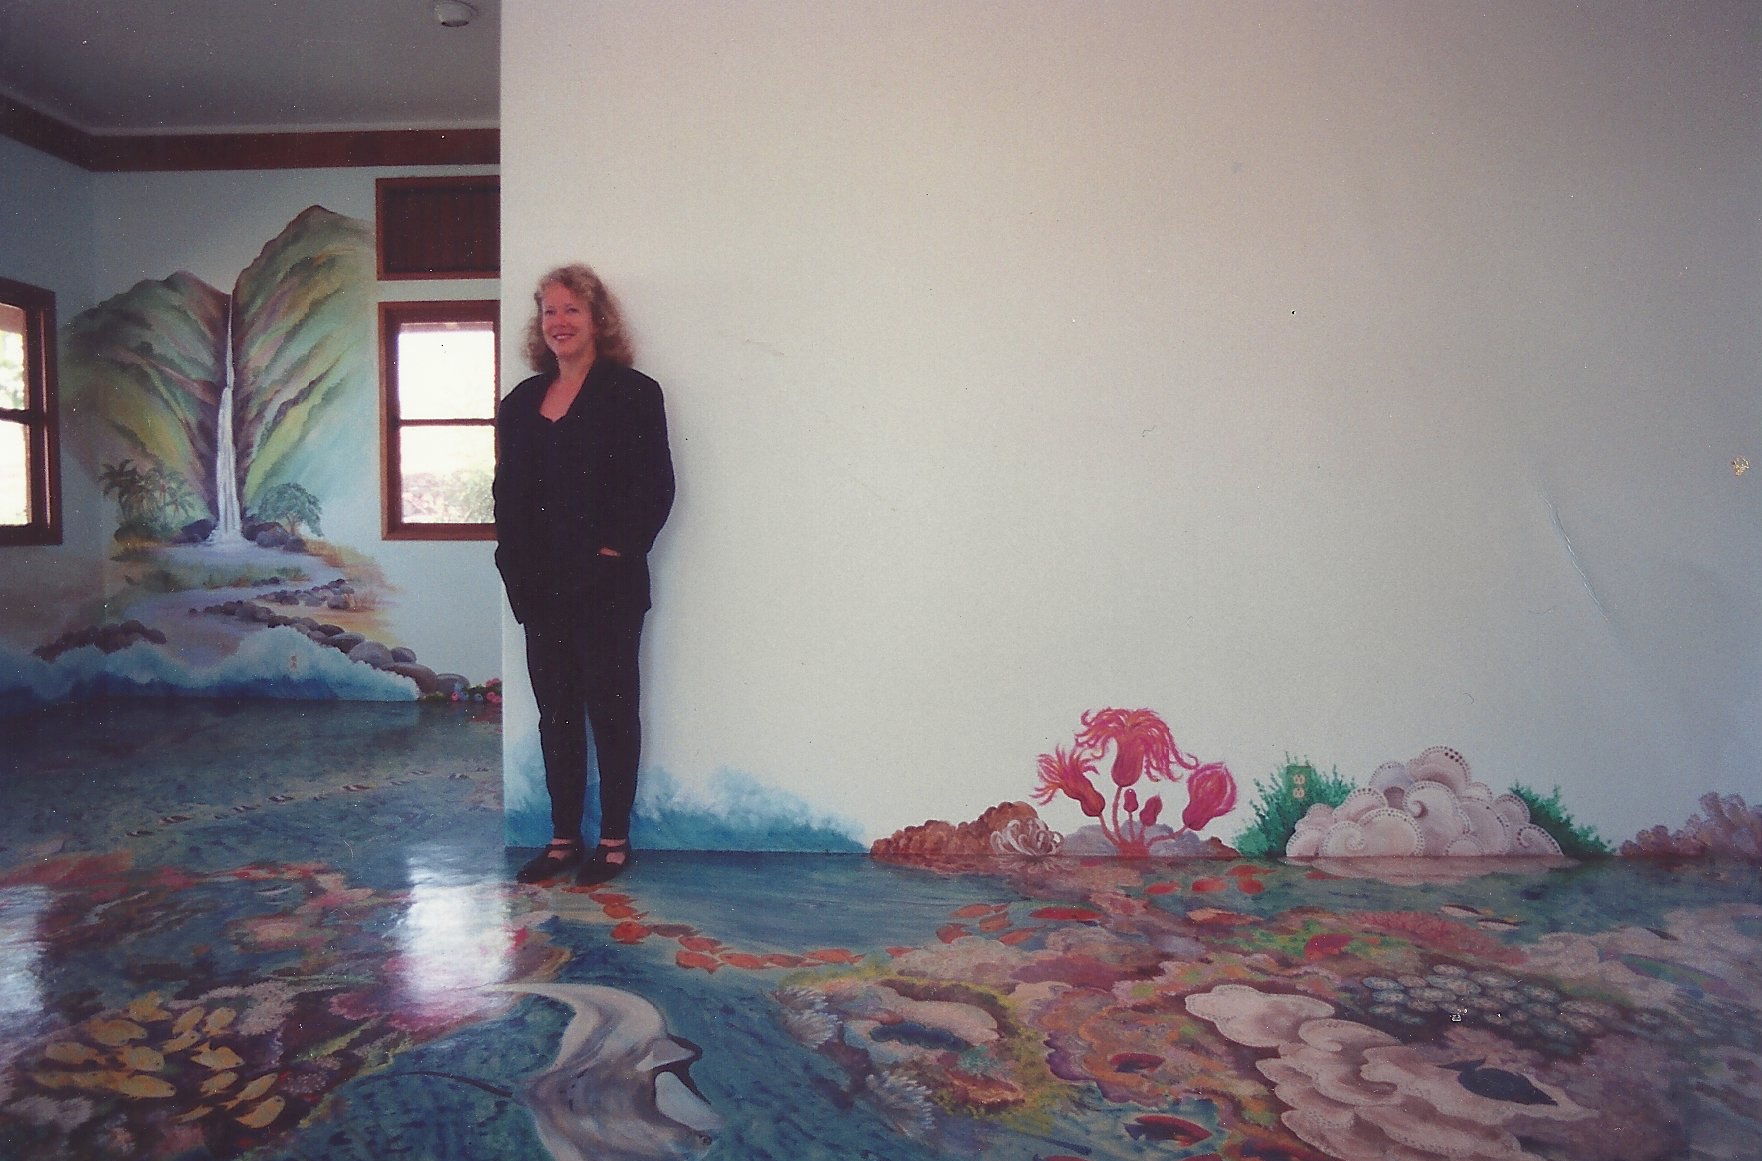 Marcia, painting floor and wall murals at Pua Mau Gardens in 1994